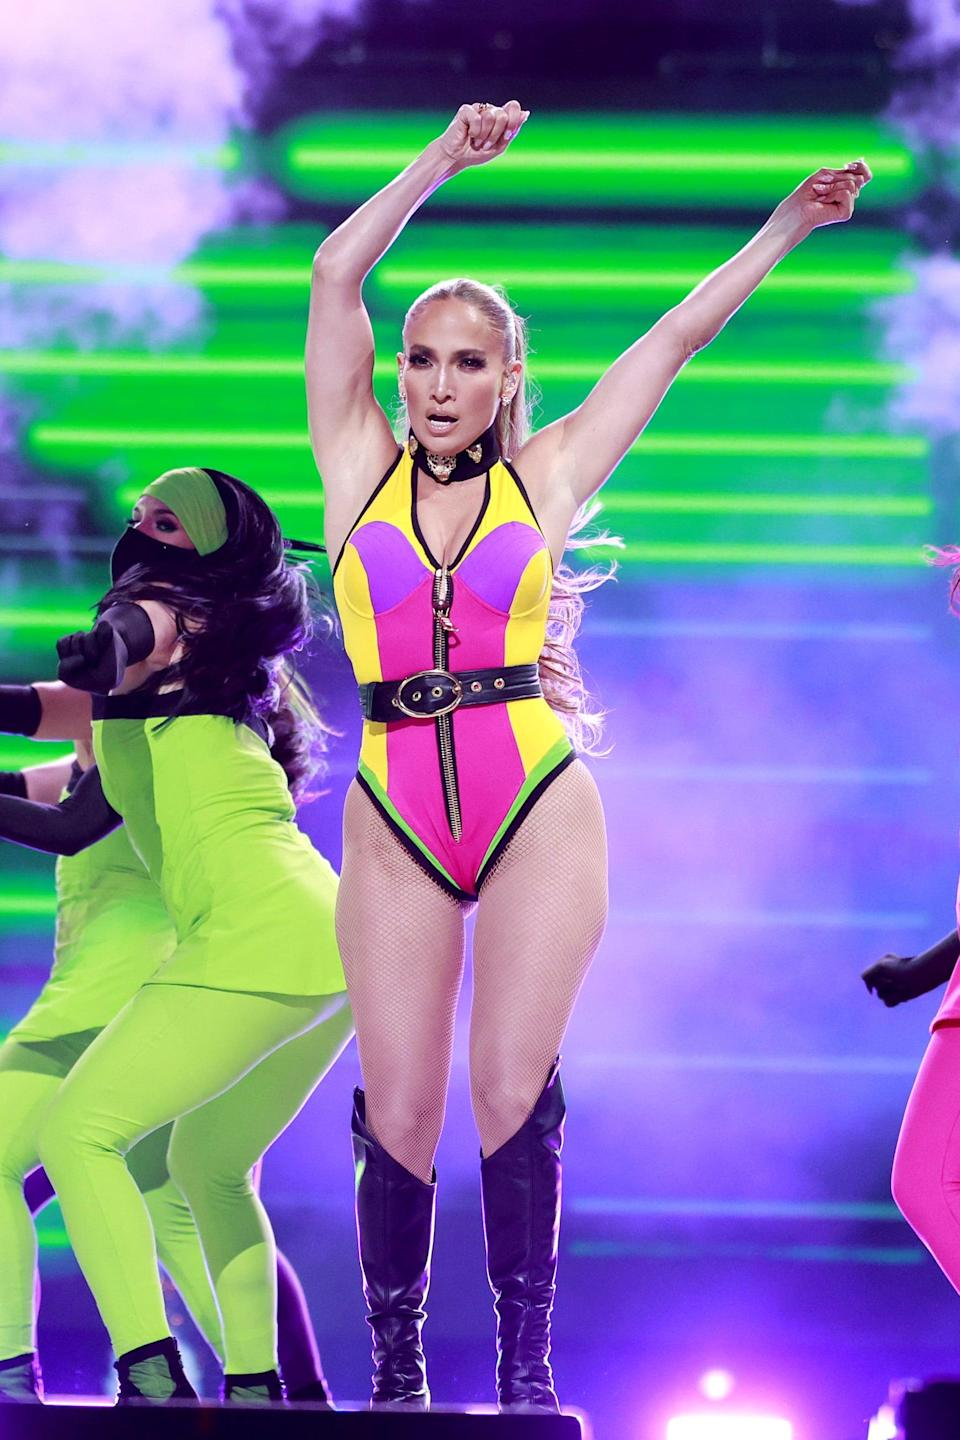 <p>J Lo stayed in her Fausto Puglisi for Roberto Cavalli choker and swapped her minidress for this belted, neon colorblock bodysuit with the same knee-high boots.</p>